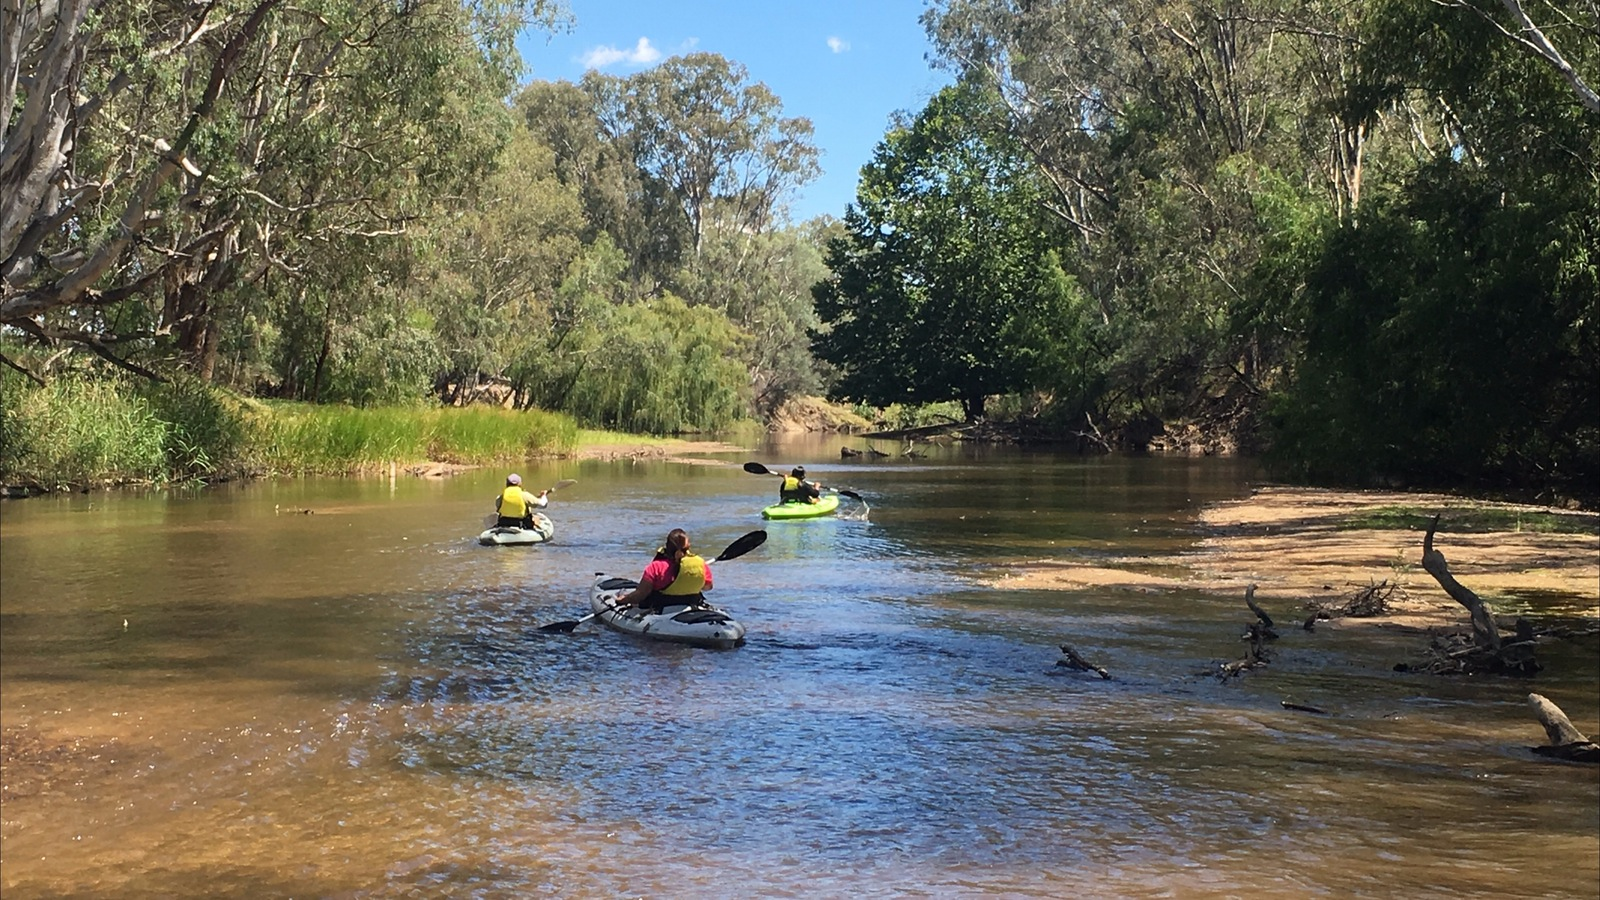 3 kayakers on the Ovens River